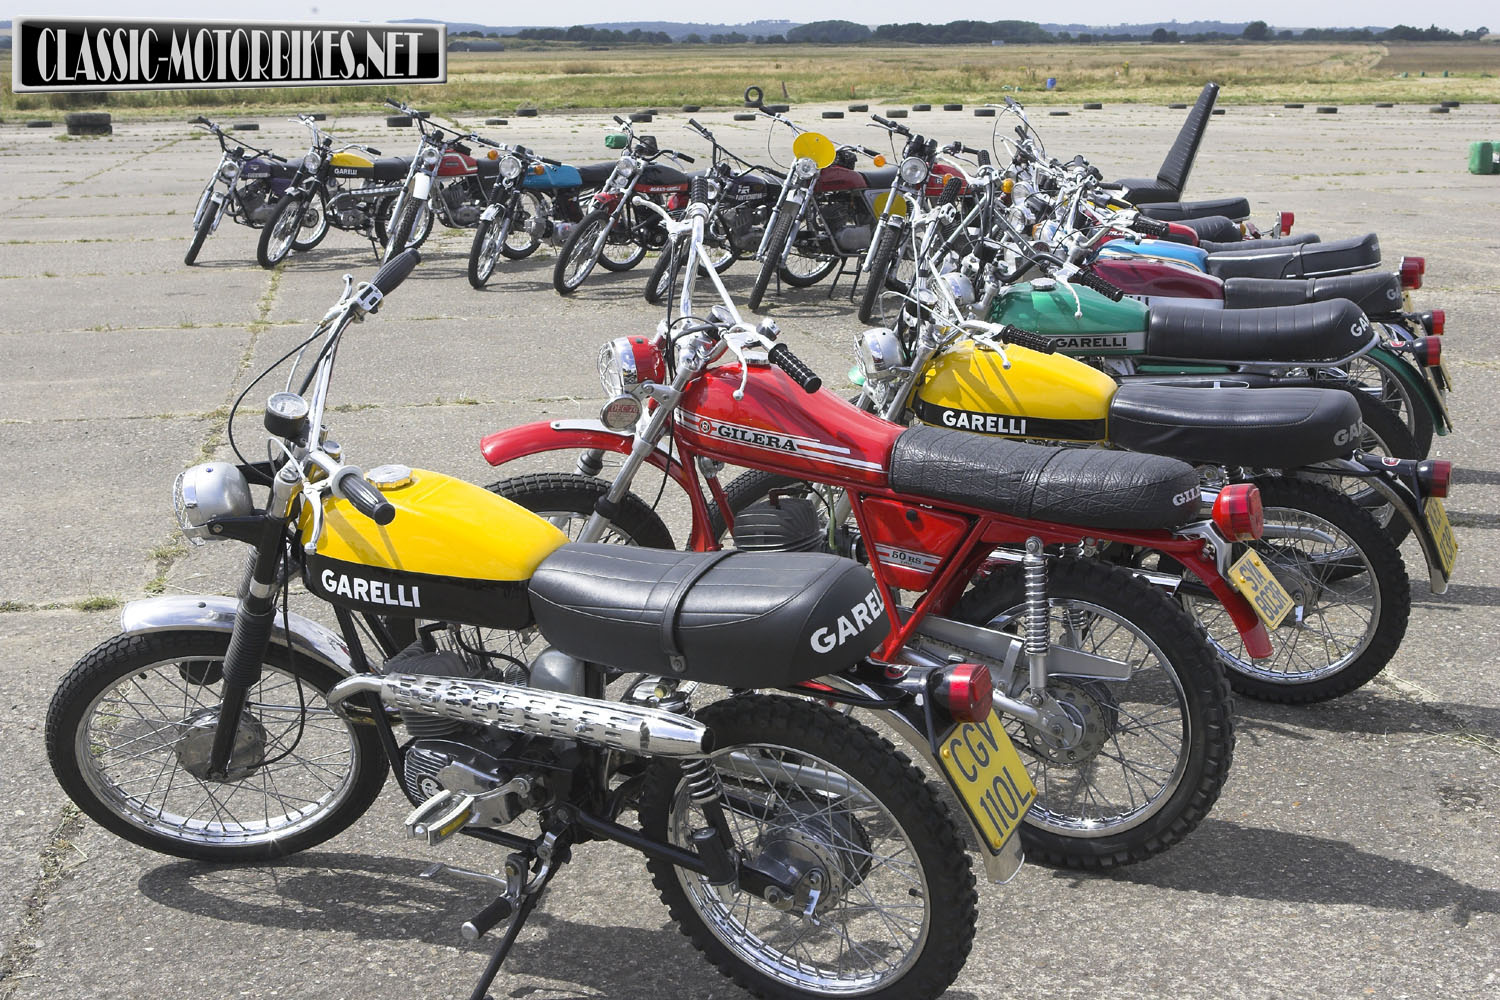 1970s Moped Shootout Classic Motorbikes